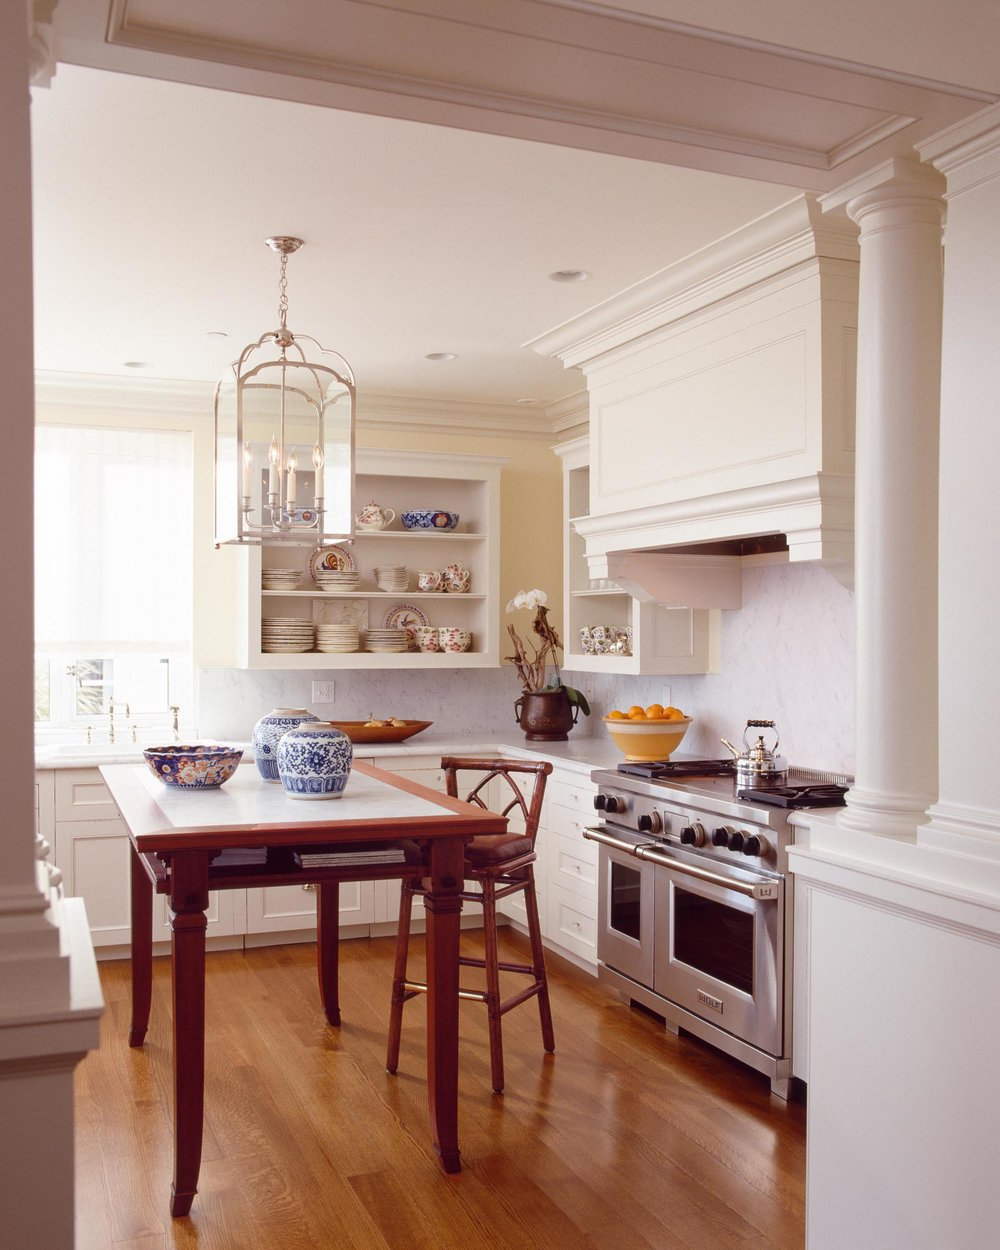 Kitchen with hardwood floor, table, chairs and exhaust hood